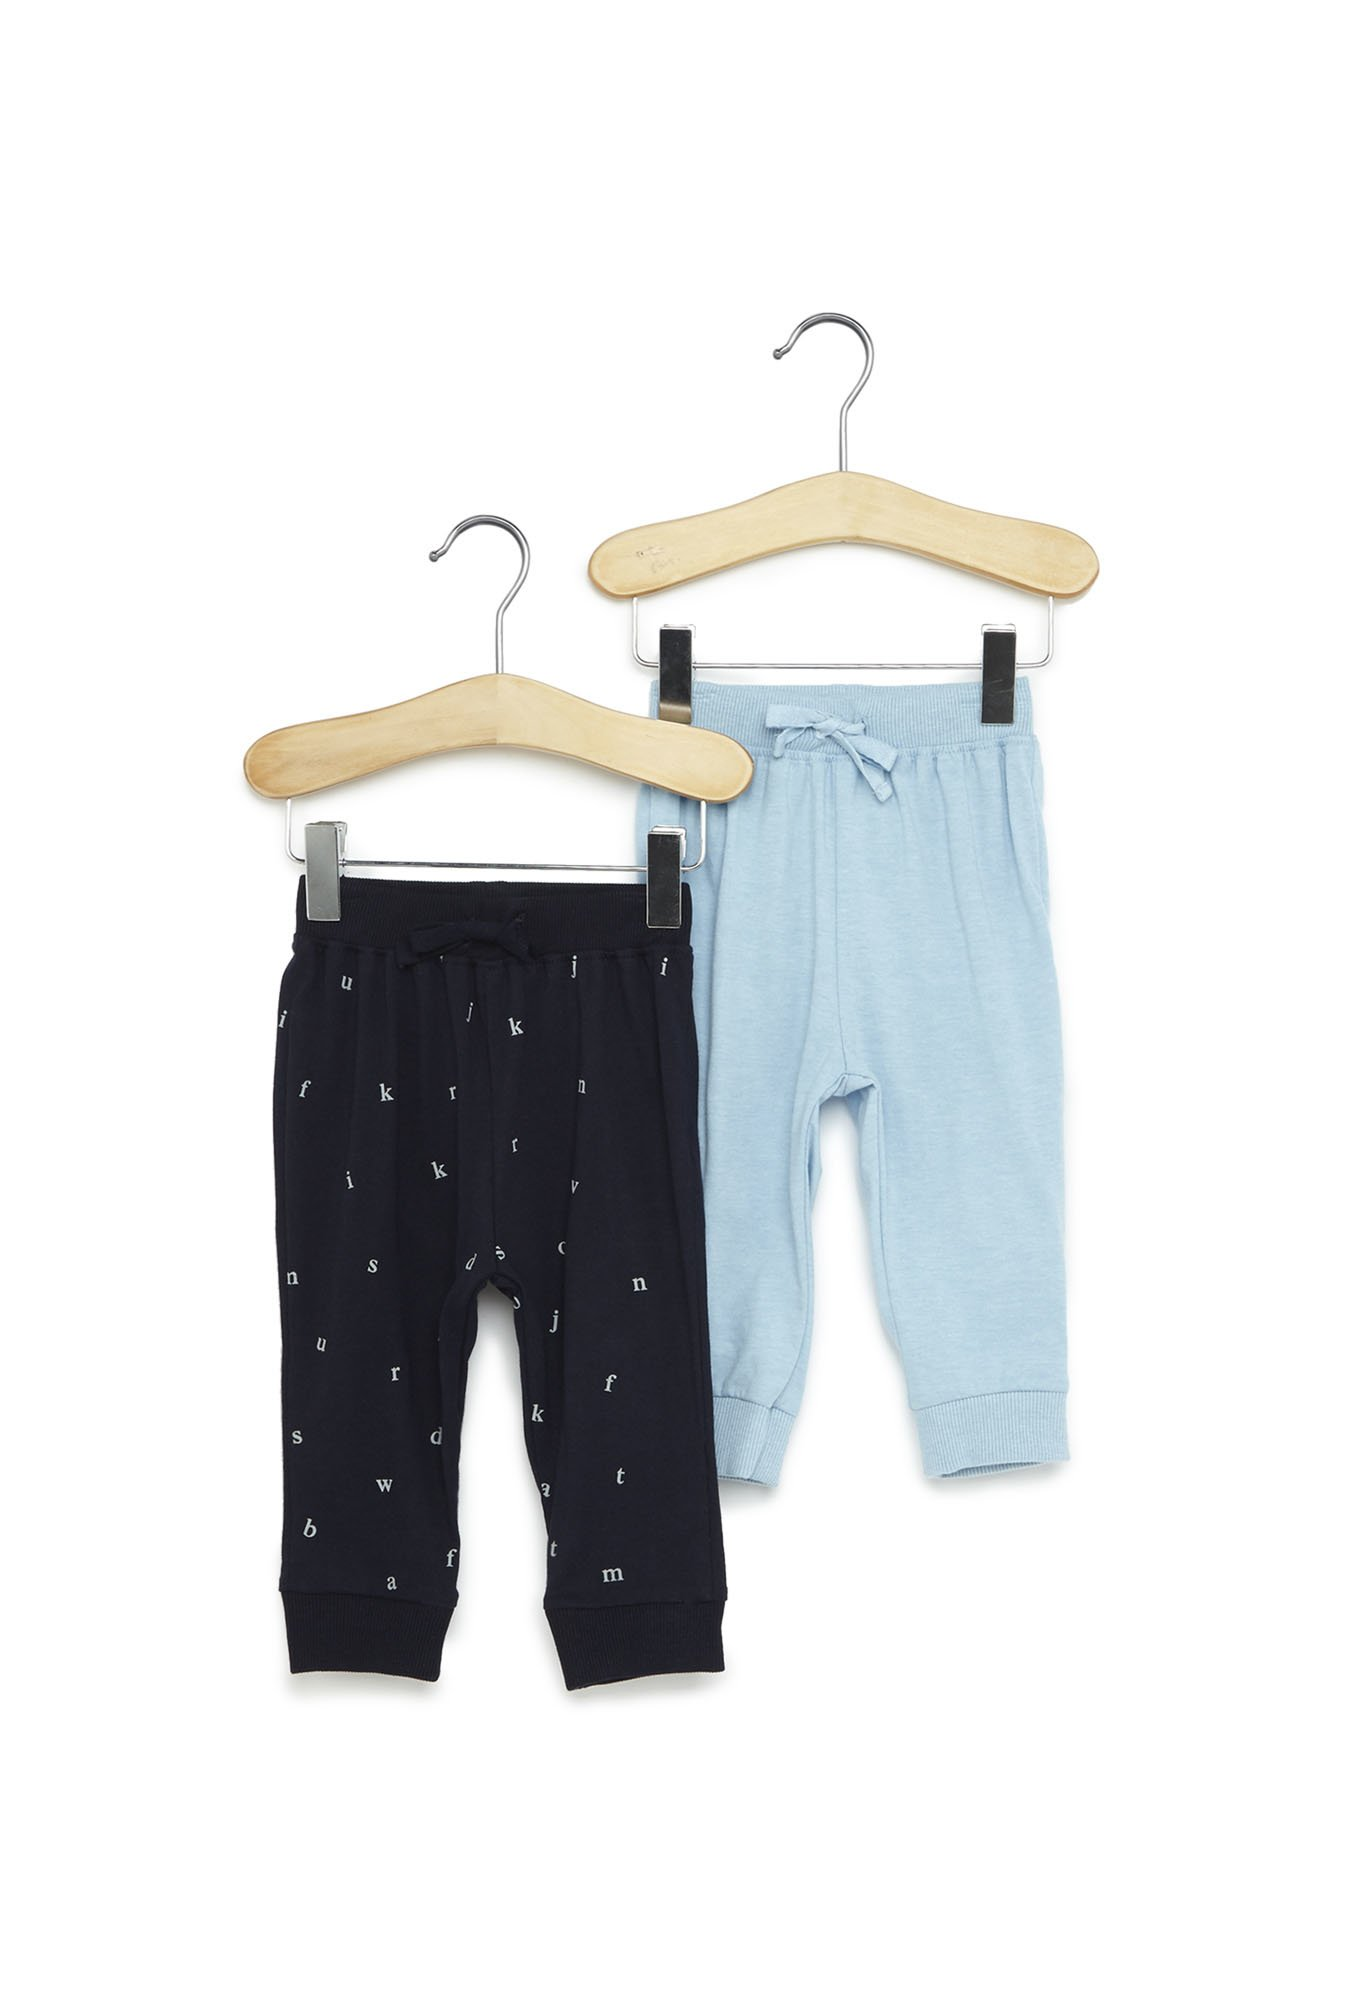 79941ceccf9c Buy Baby HOP by Westside Navy Cotton Pants Set of Two for Infant Boys  Clothing Online @ Tata CLiQ